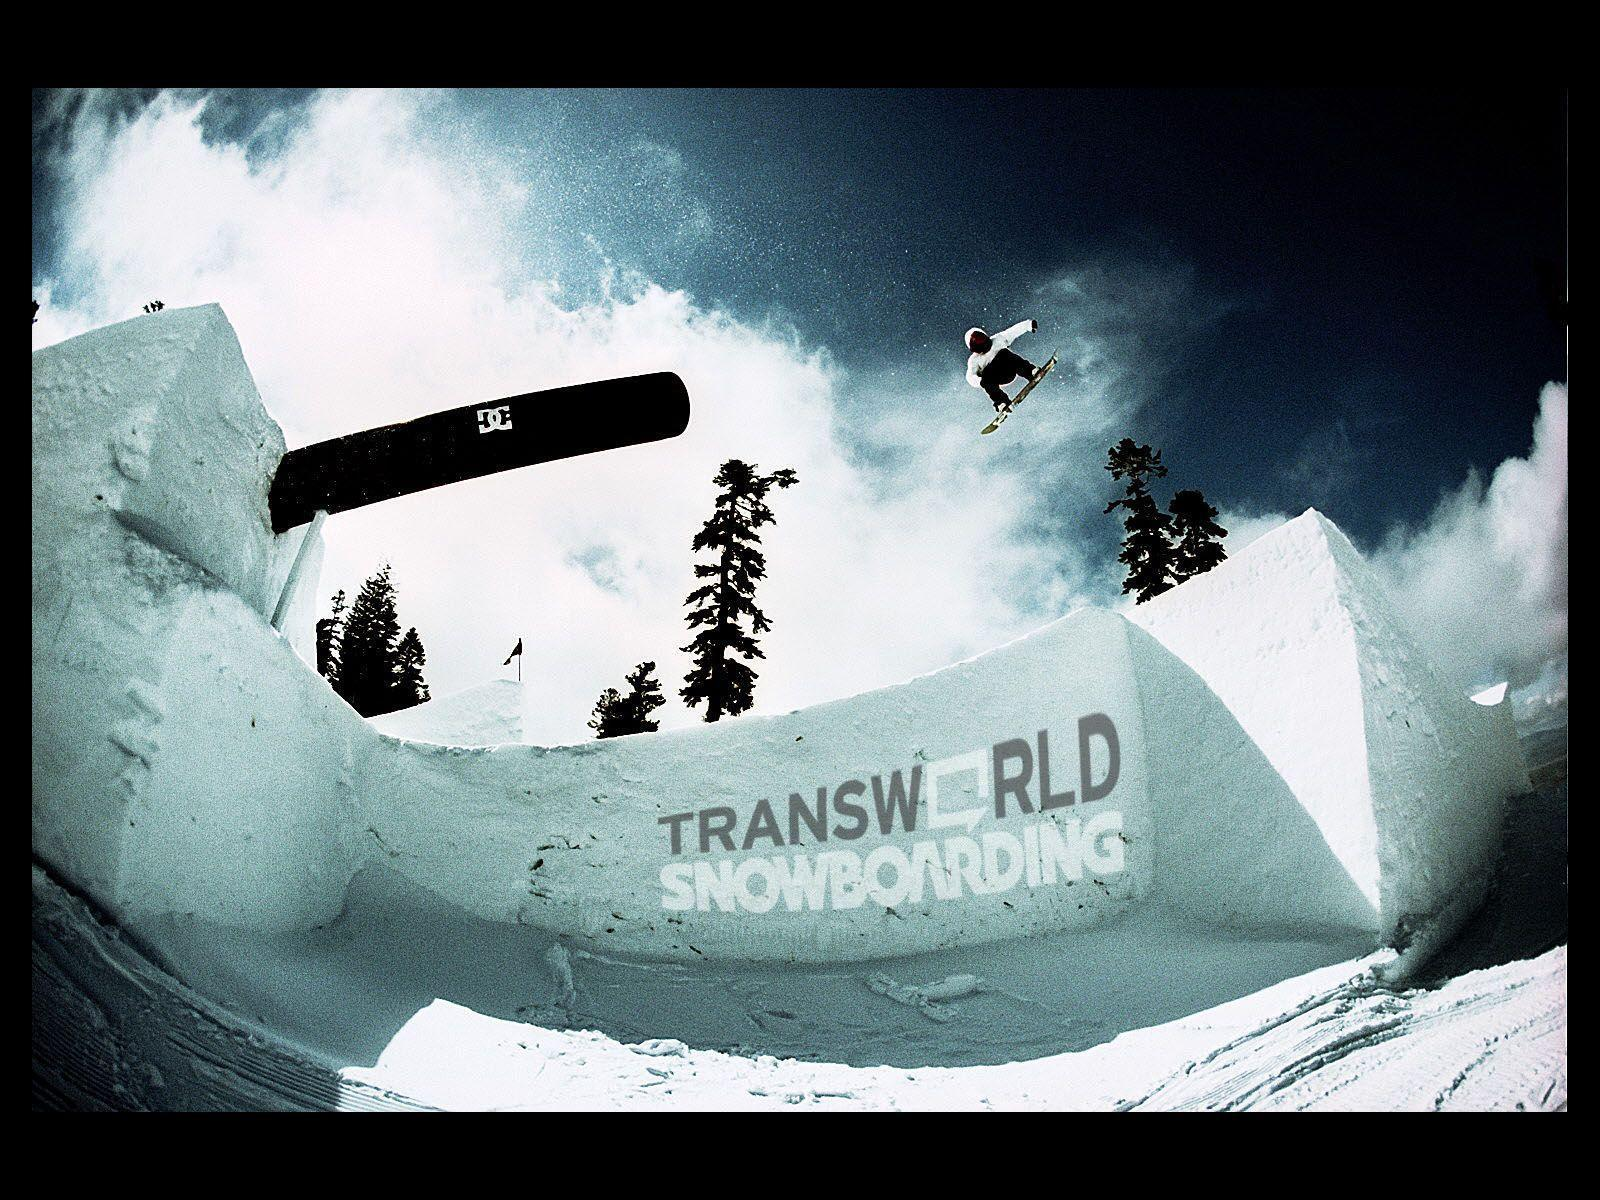 Transworld Snowboarding Wallpaper Hd Image 24401 Label: hd,image ...